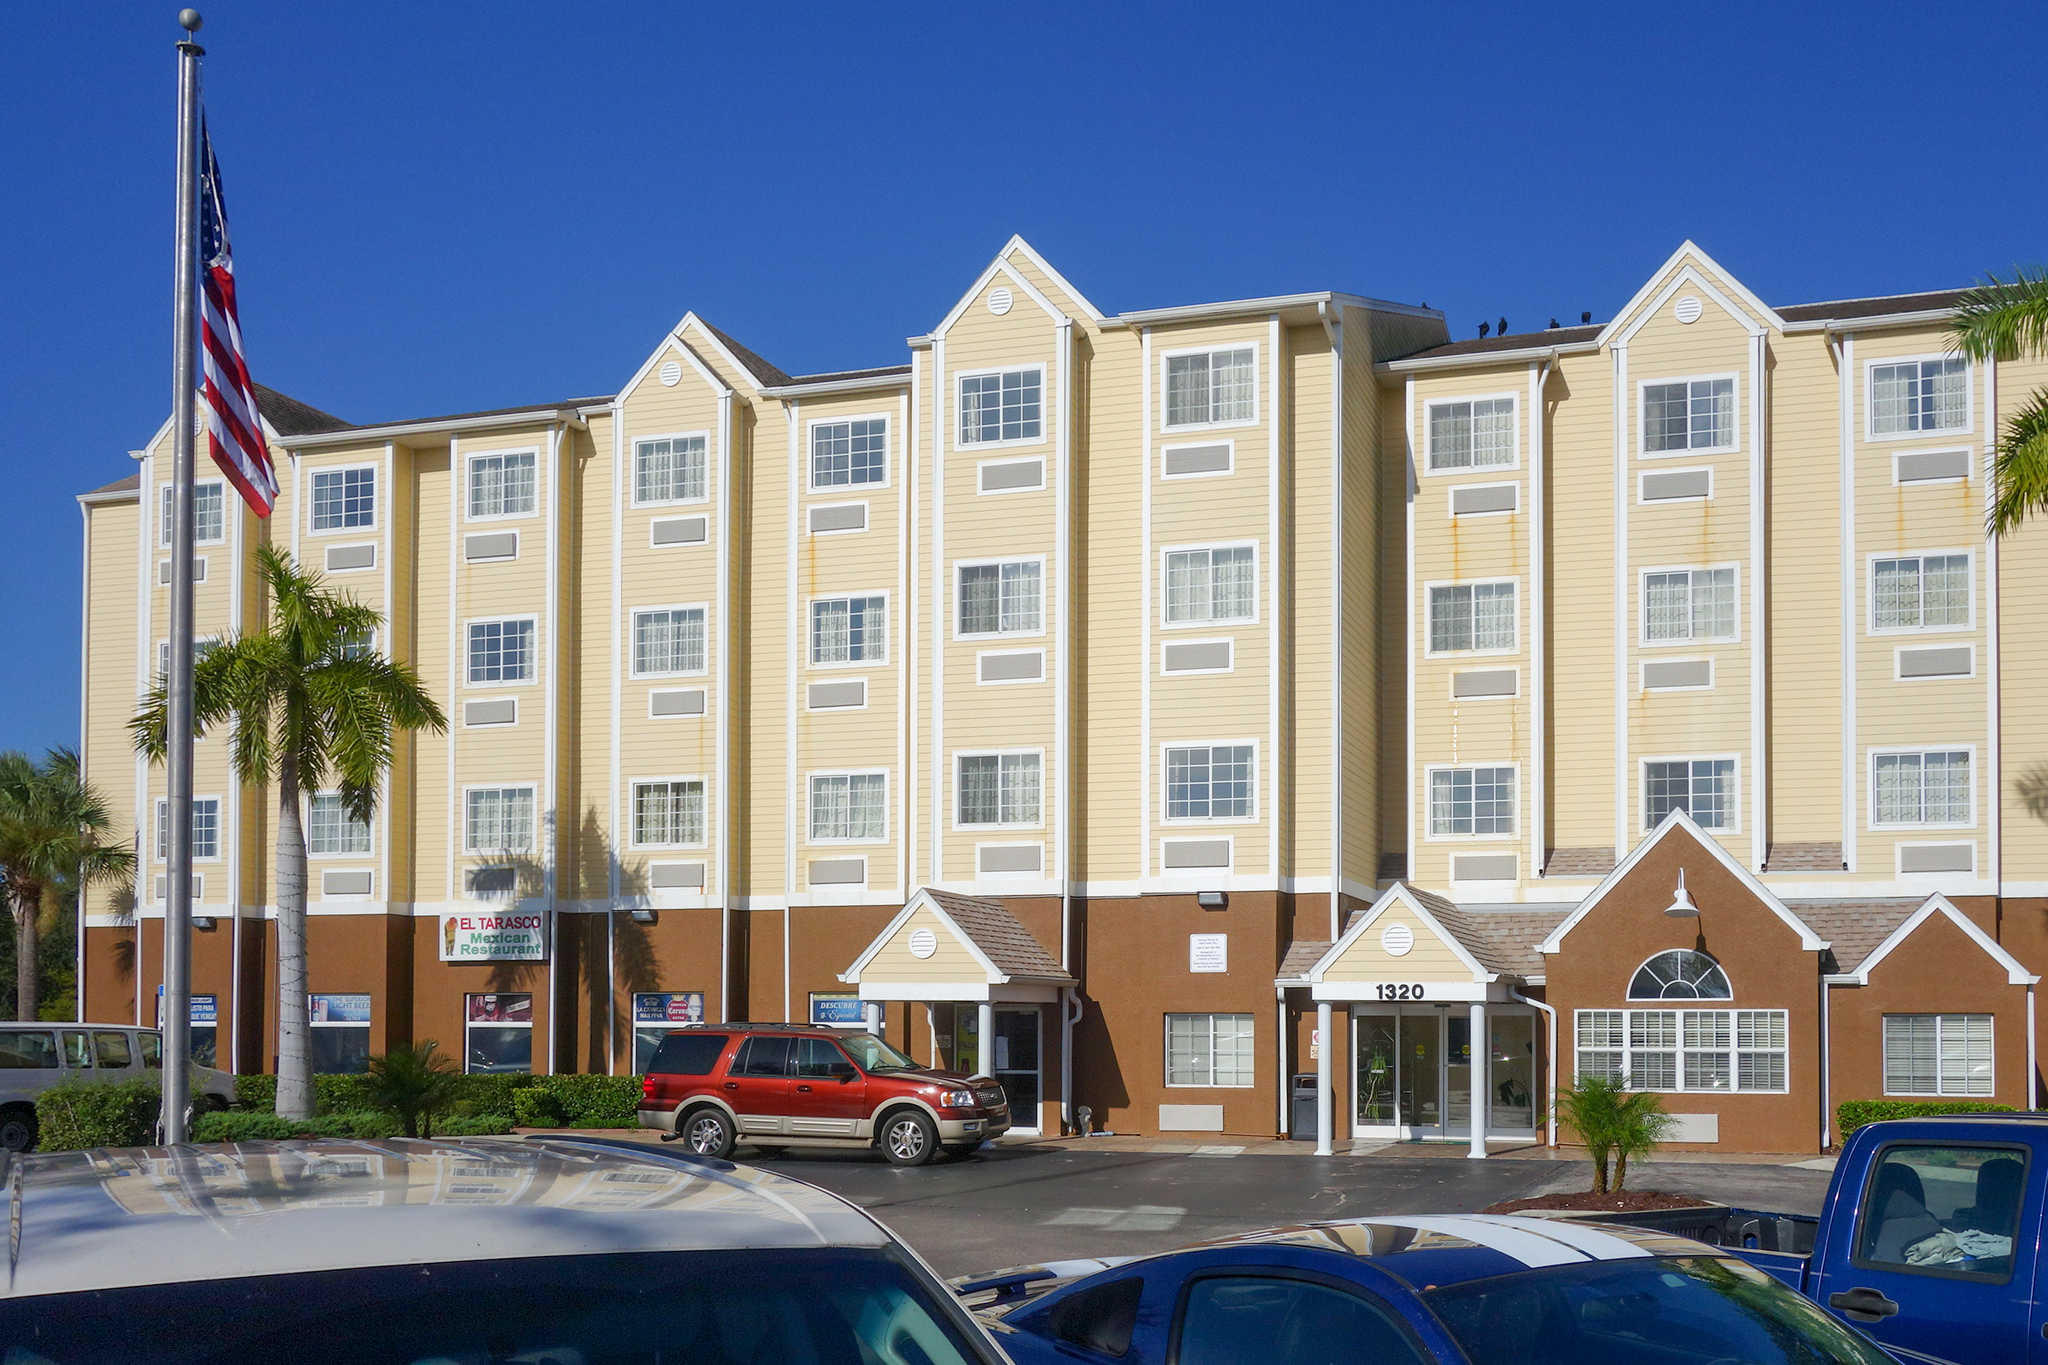 Quality Inn & Suites Lehigh Acres Fort Myers image 1